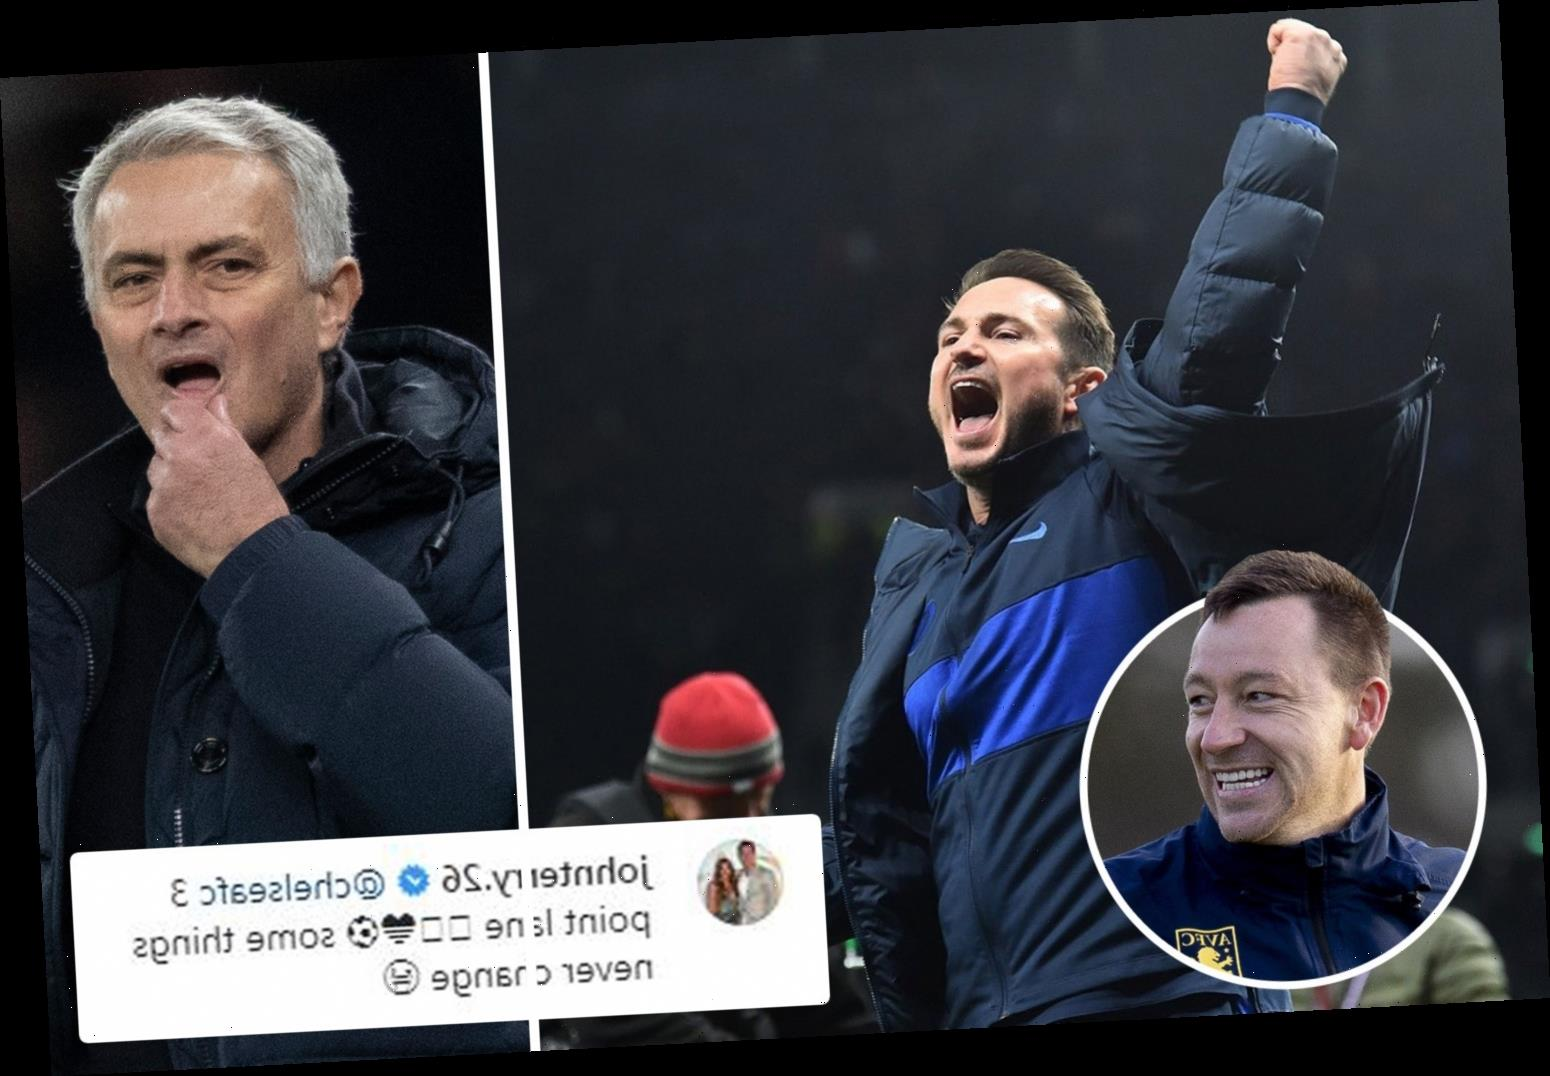 John Terry trolls Tottenham and Jose Mourinho with cheeky '3 point lane' comment after Chelsea's win over rivals – The Sun